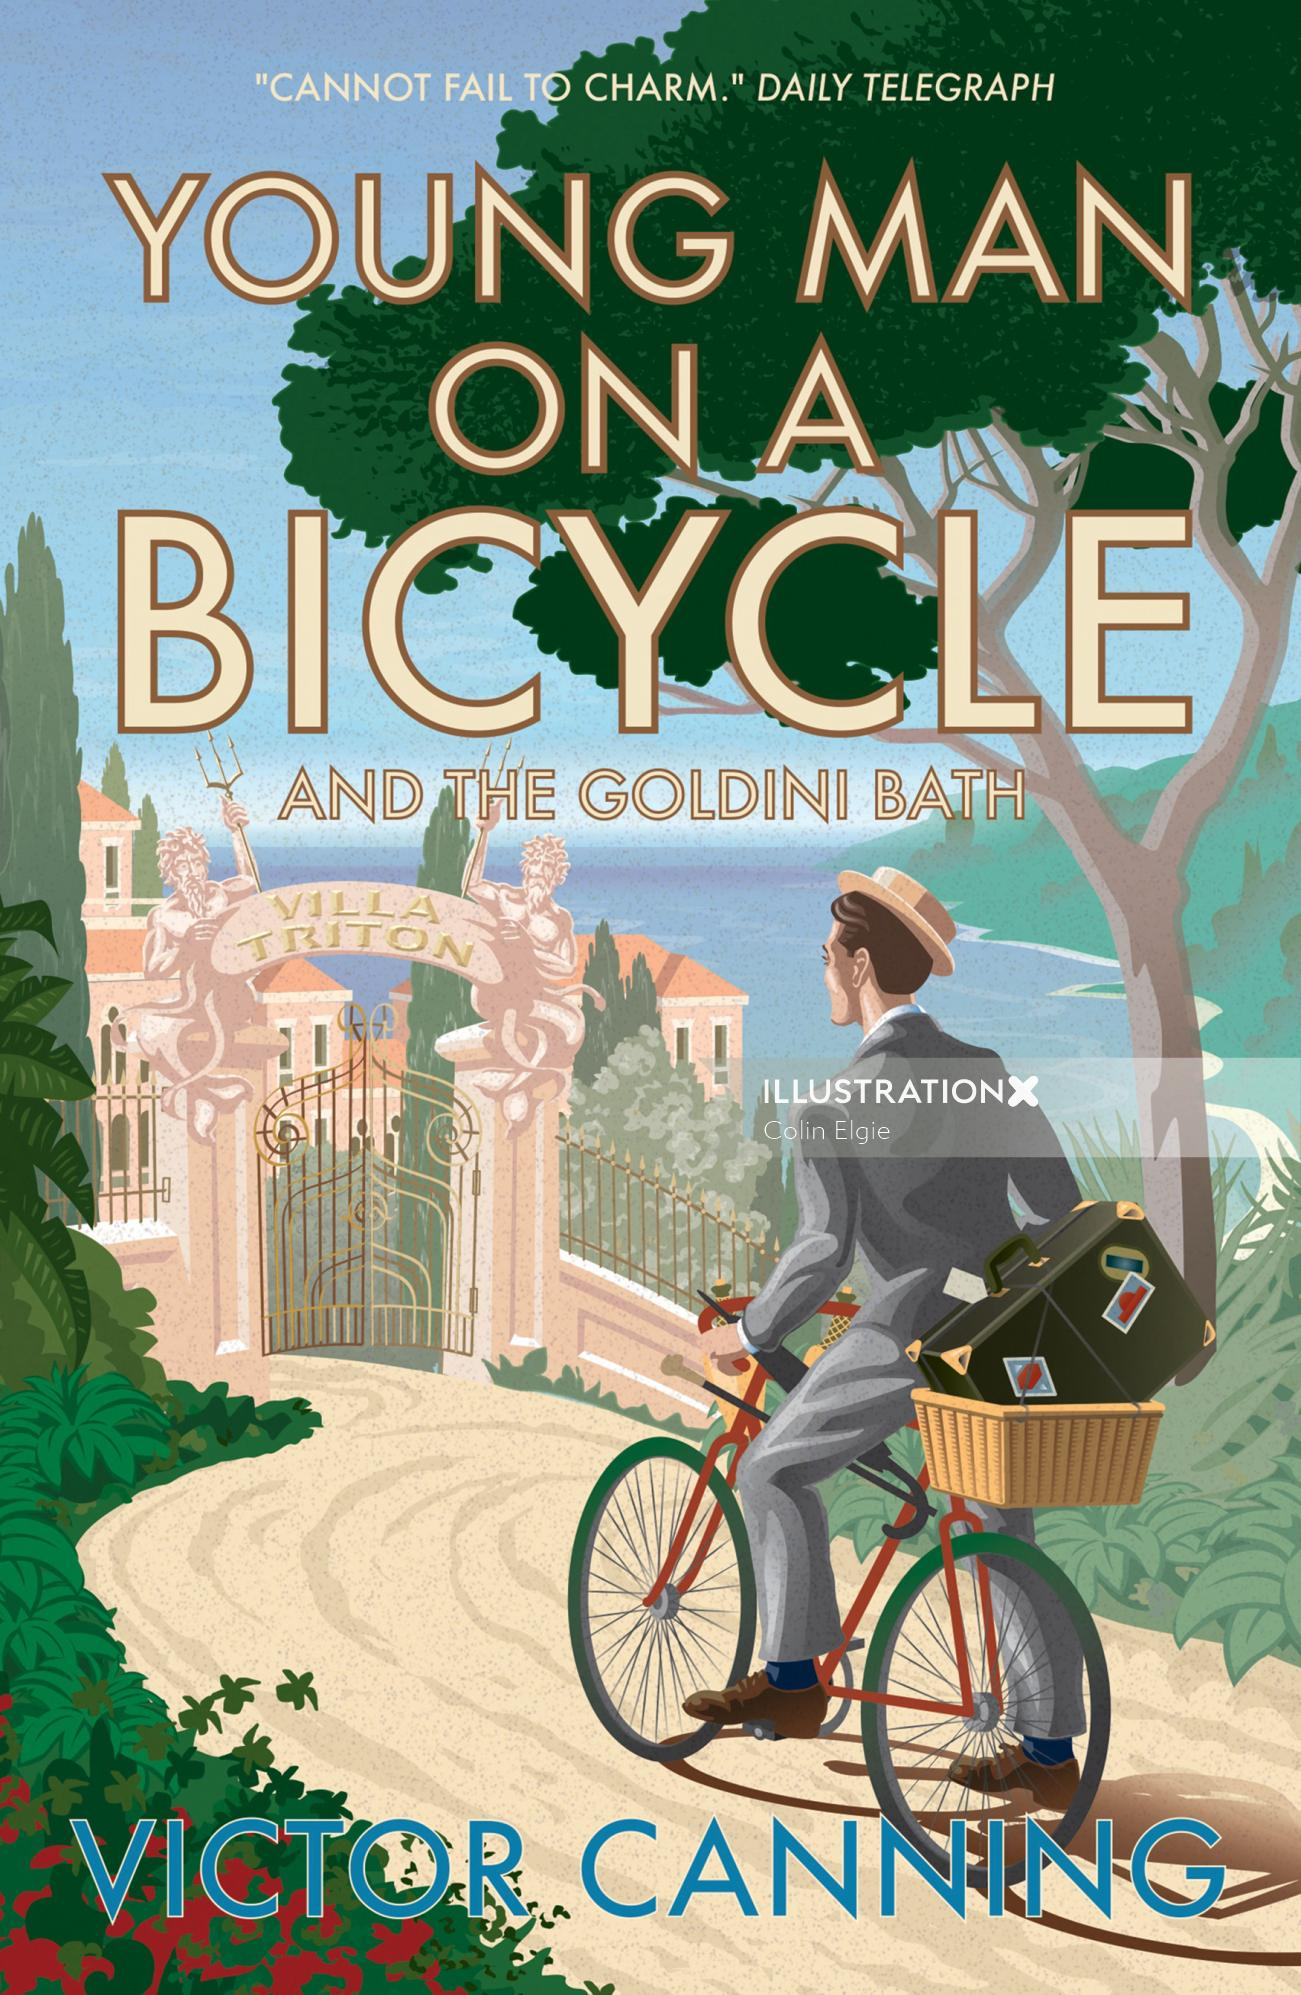 A book cover design for a collection of short stories, in which a young man on a bicycle, arrived at